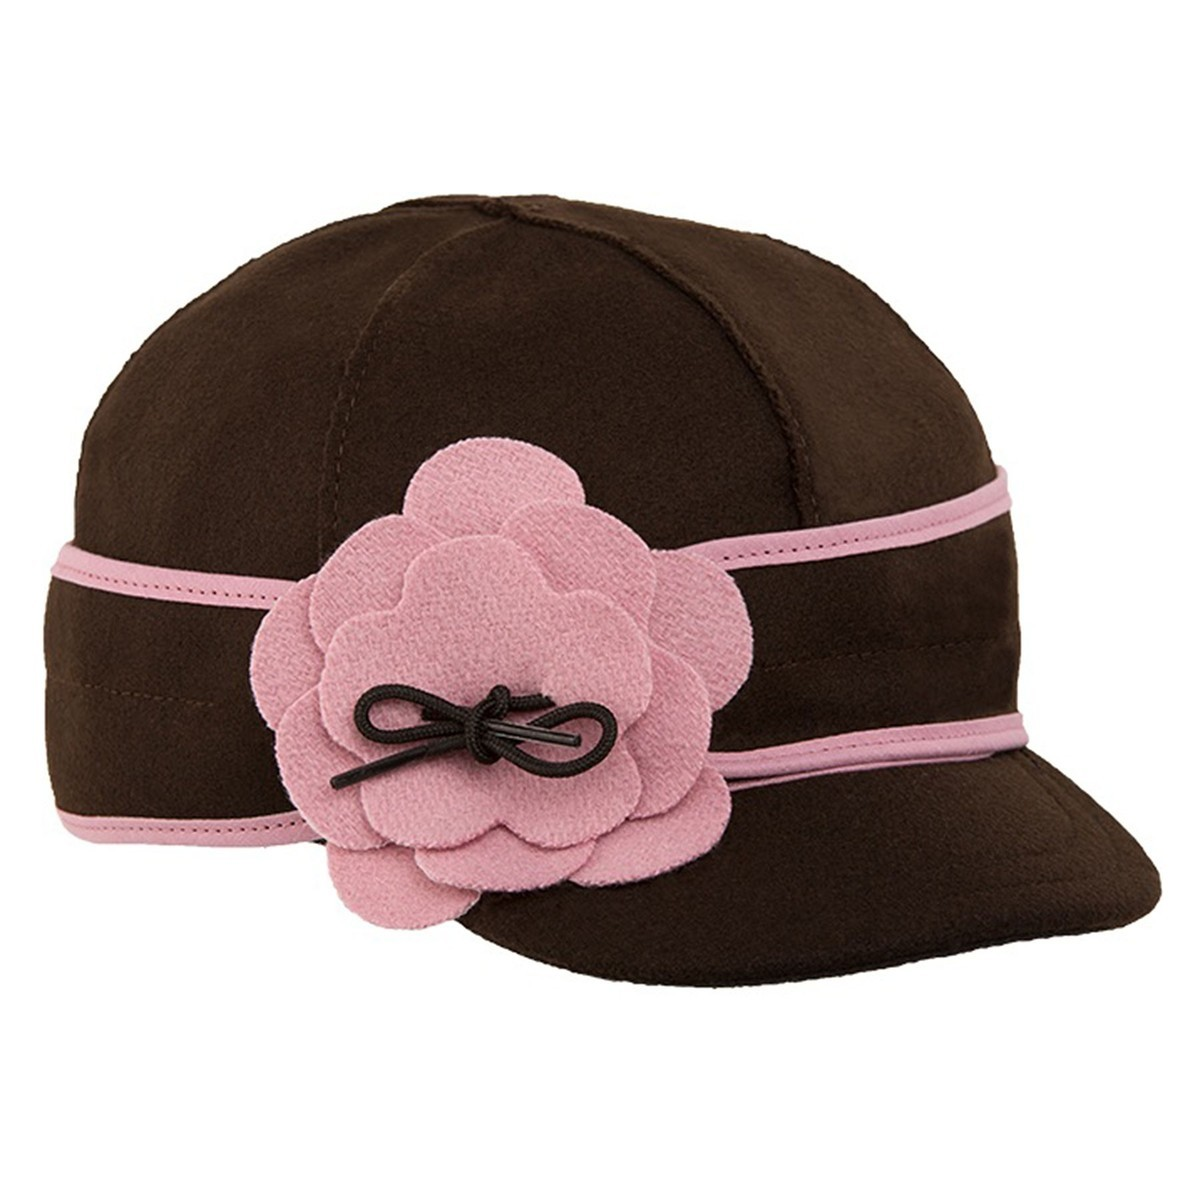 Stormy Kromer Petal Pusher Cap Chocolate Pink ベースボール スポーツキャップ 帽子 Chocolate Pink